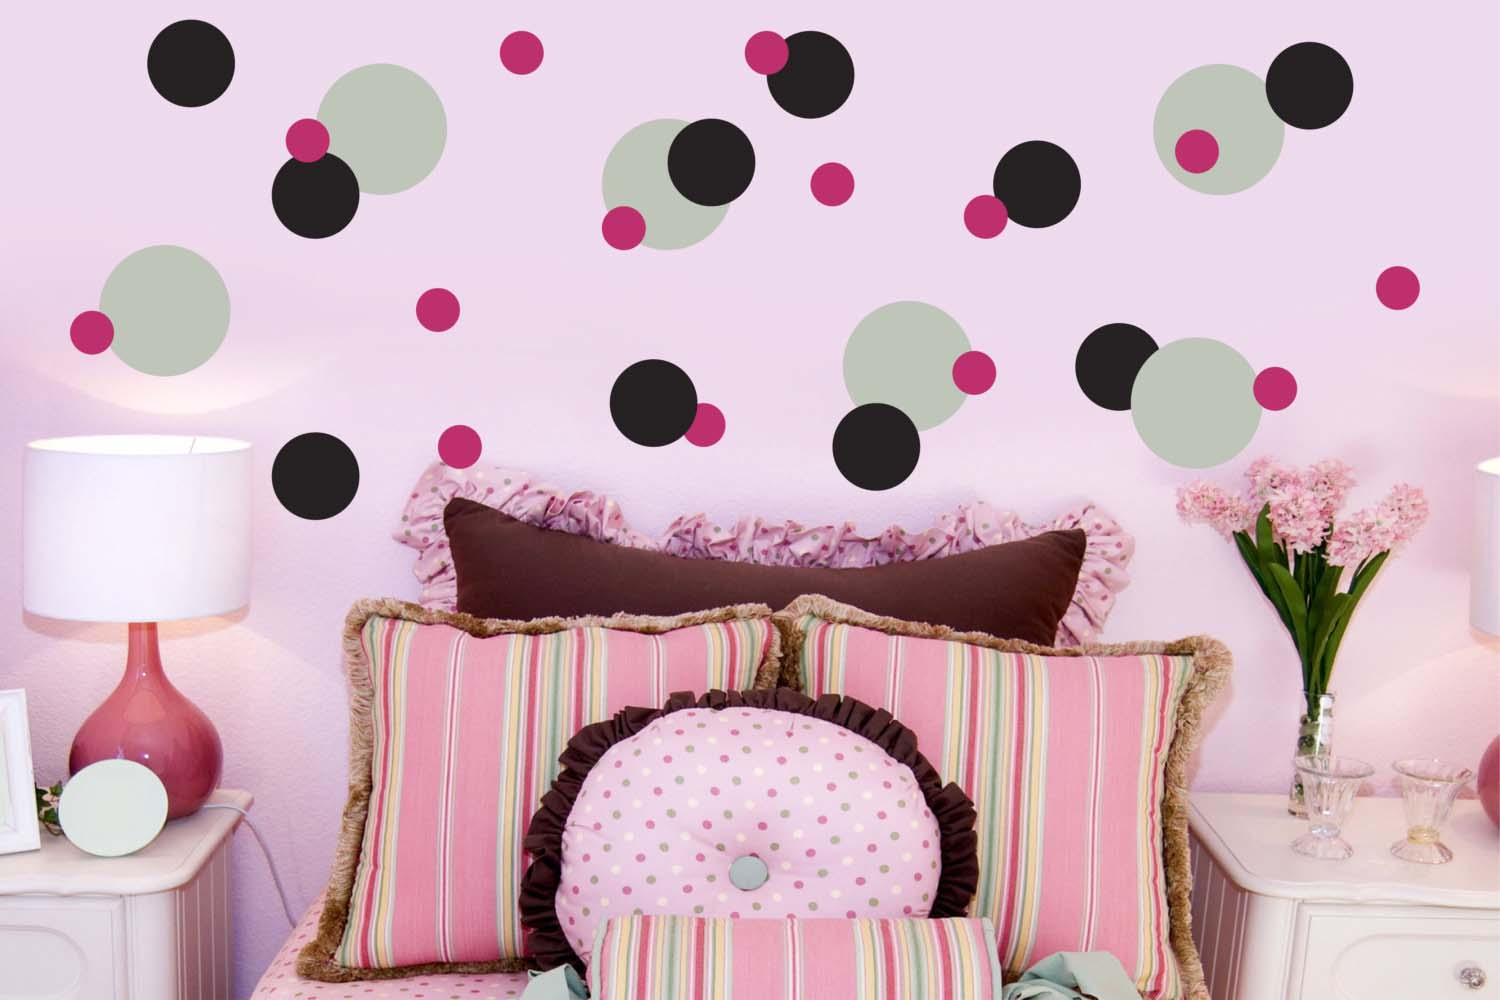 Girls Bedroom Paint Ideas Polka Dots 15+ polka dot interior wall designs, decor ideas | design trends